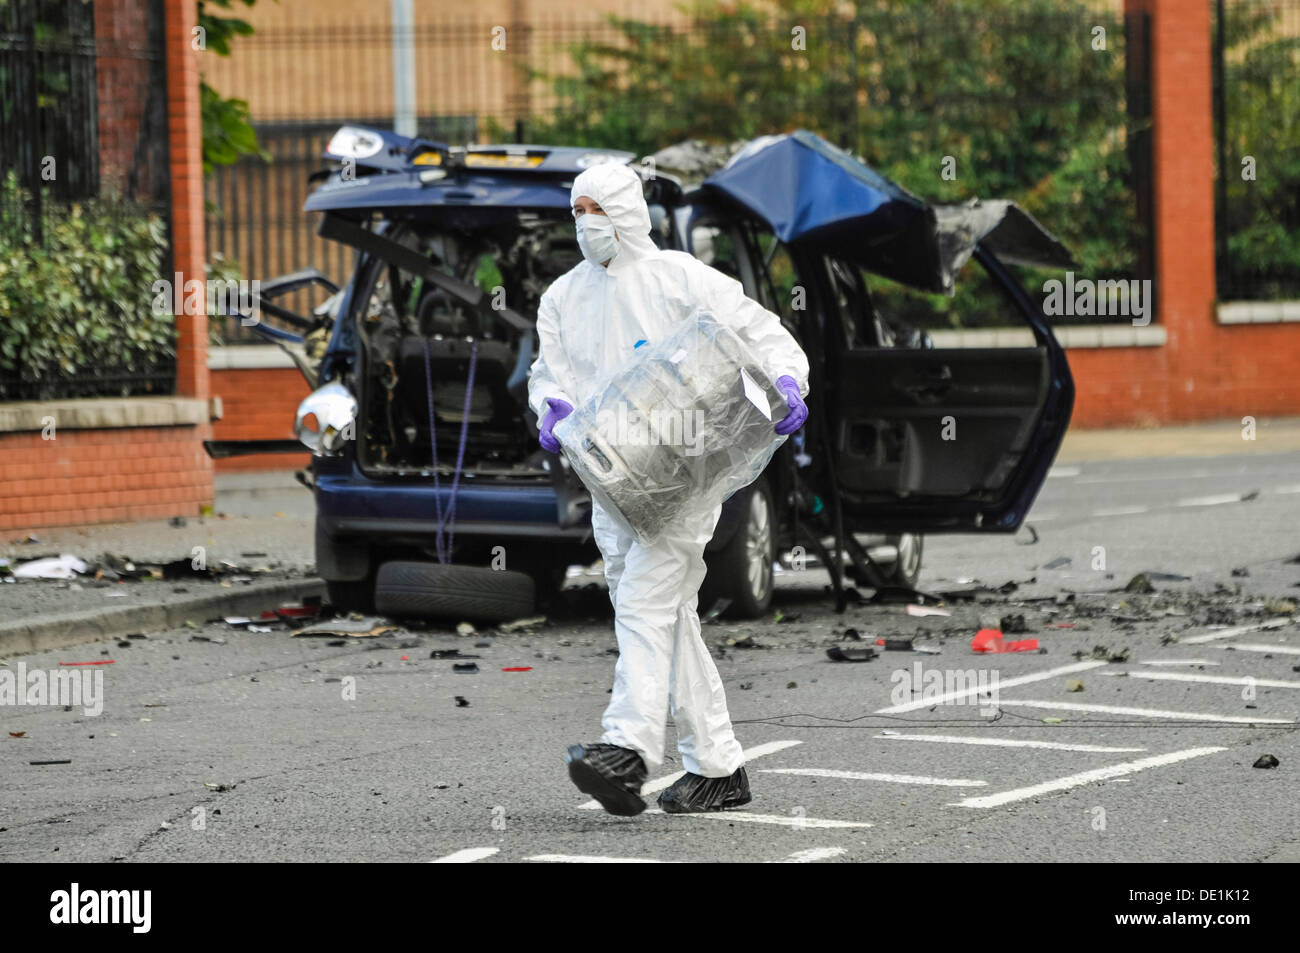 Belfast, Northern Ireland. 10th September 2013 - A PSNI forensics officer carries away the beer keg which was in the rear of an abandoned vehicle in a plastic bag.  The car was destroyed in a controlled explosion. Credit:  Stephen Barnes/Alamy Live News - Stock Image